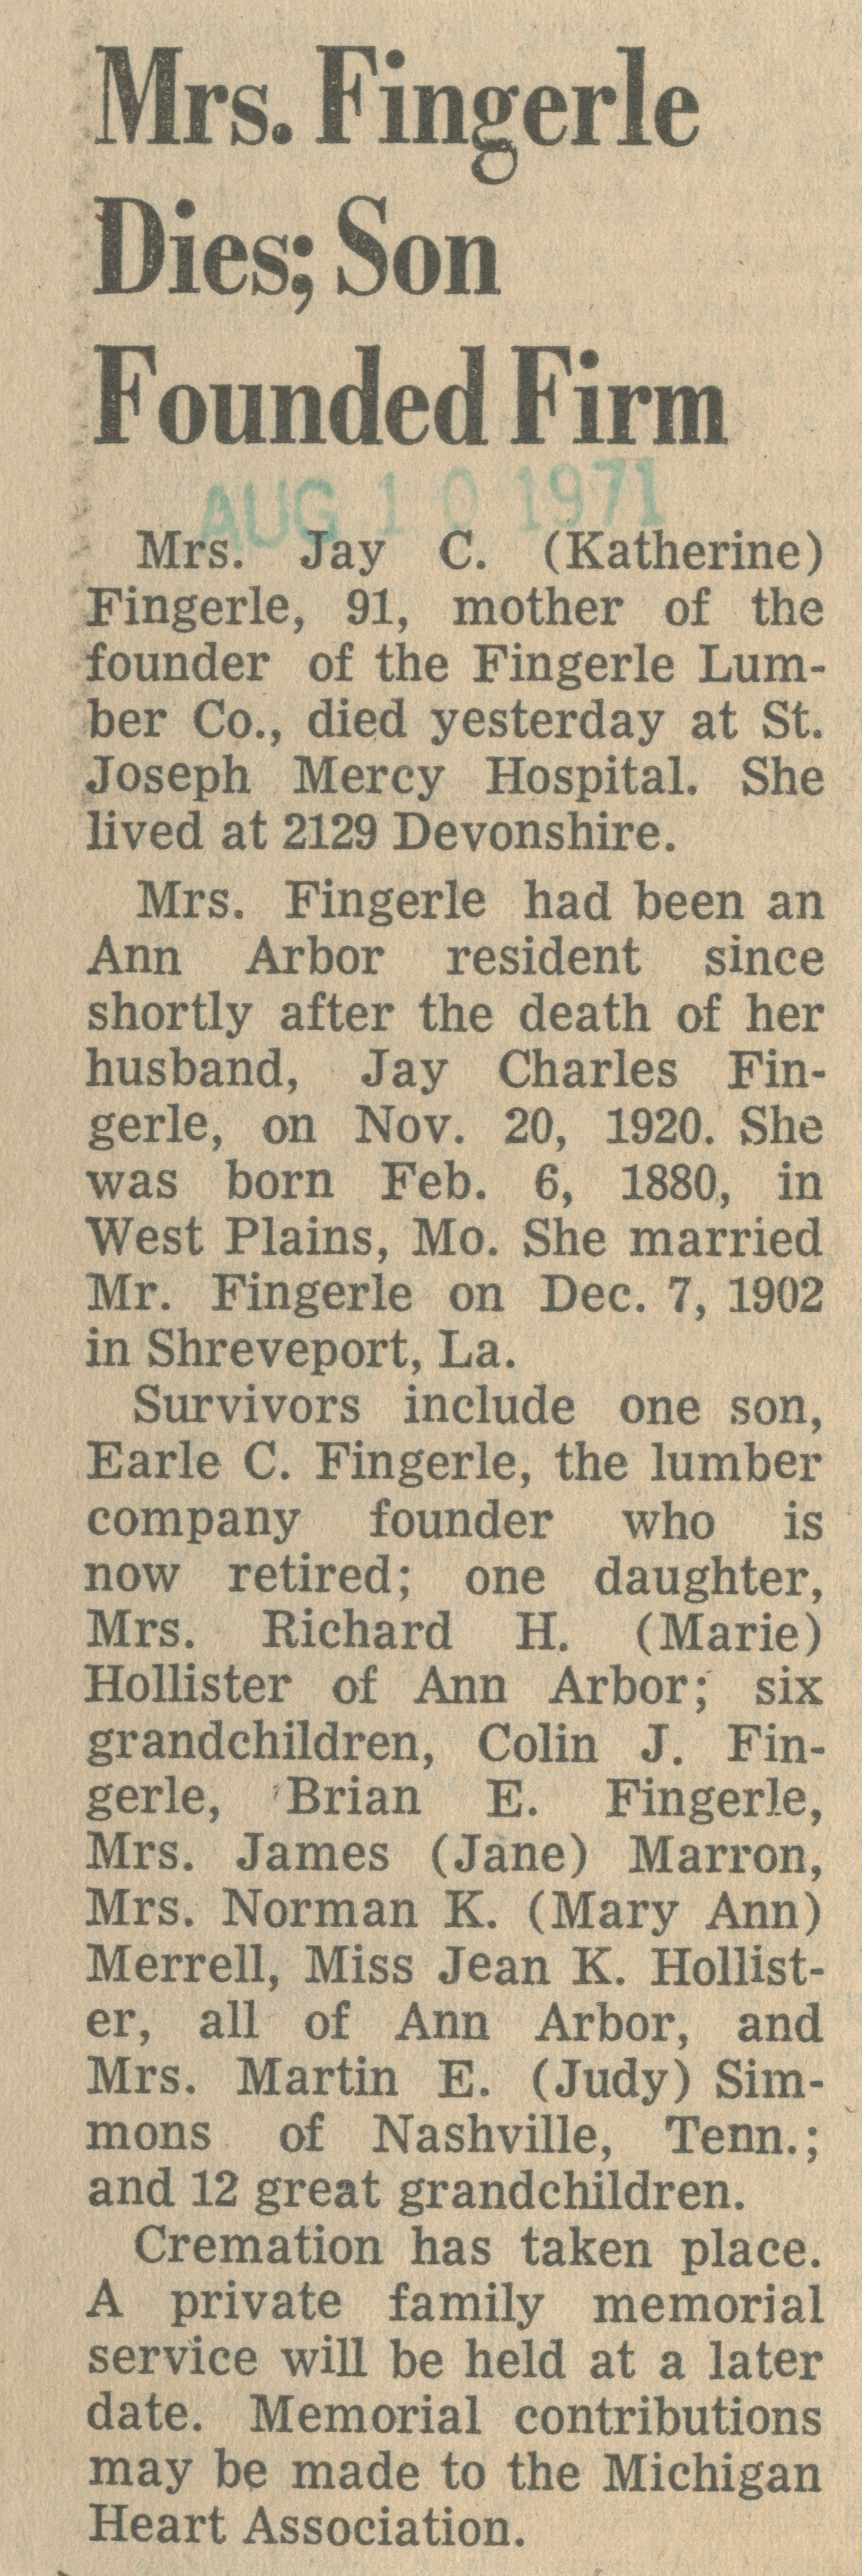 Mrs. Fingerle Dies; Son Founded Firm image